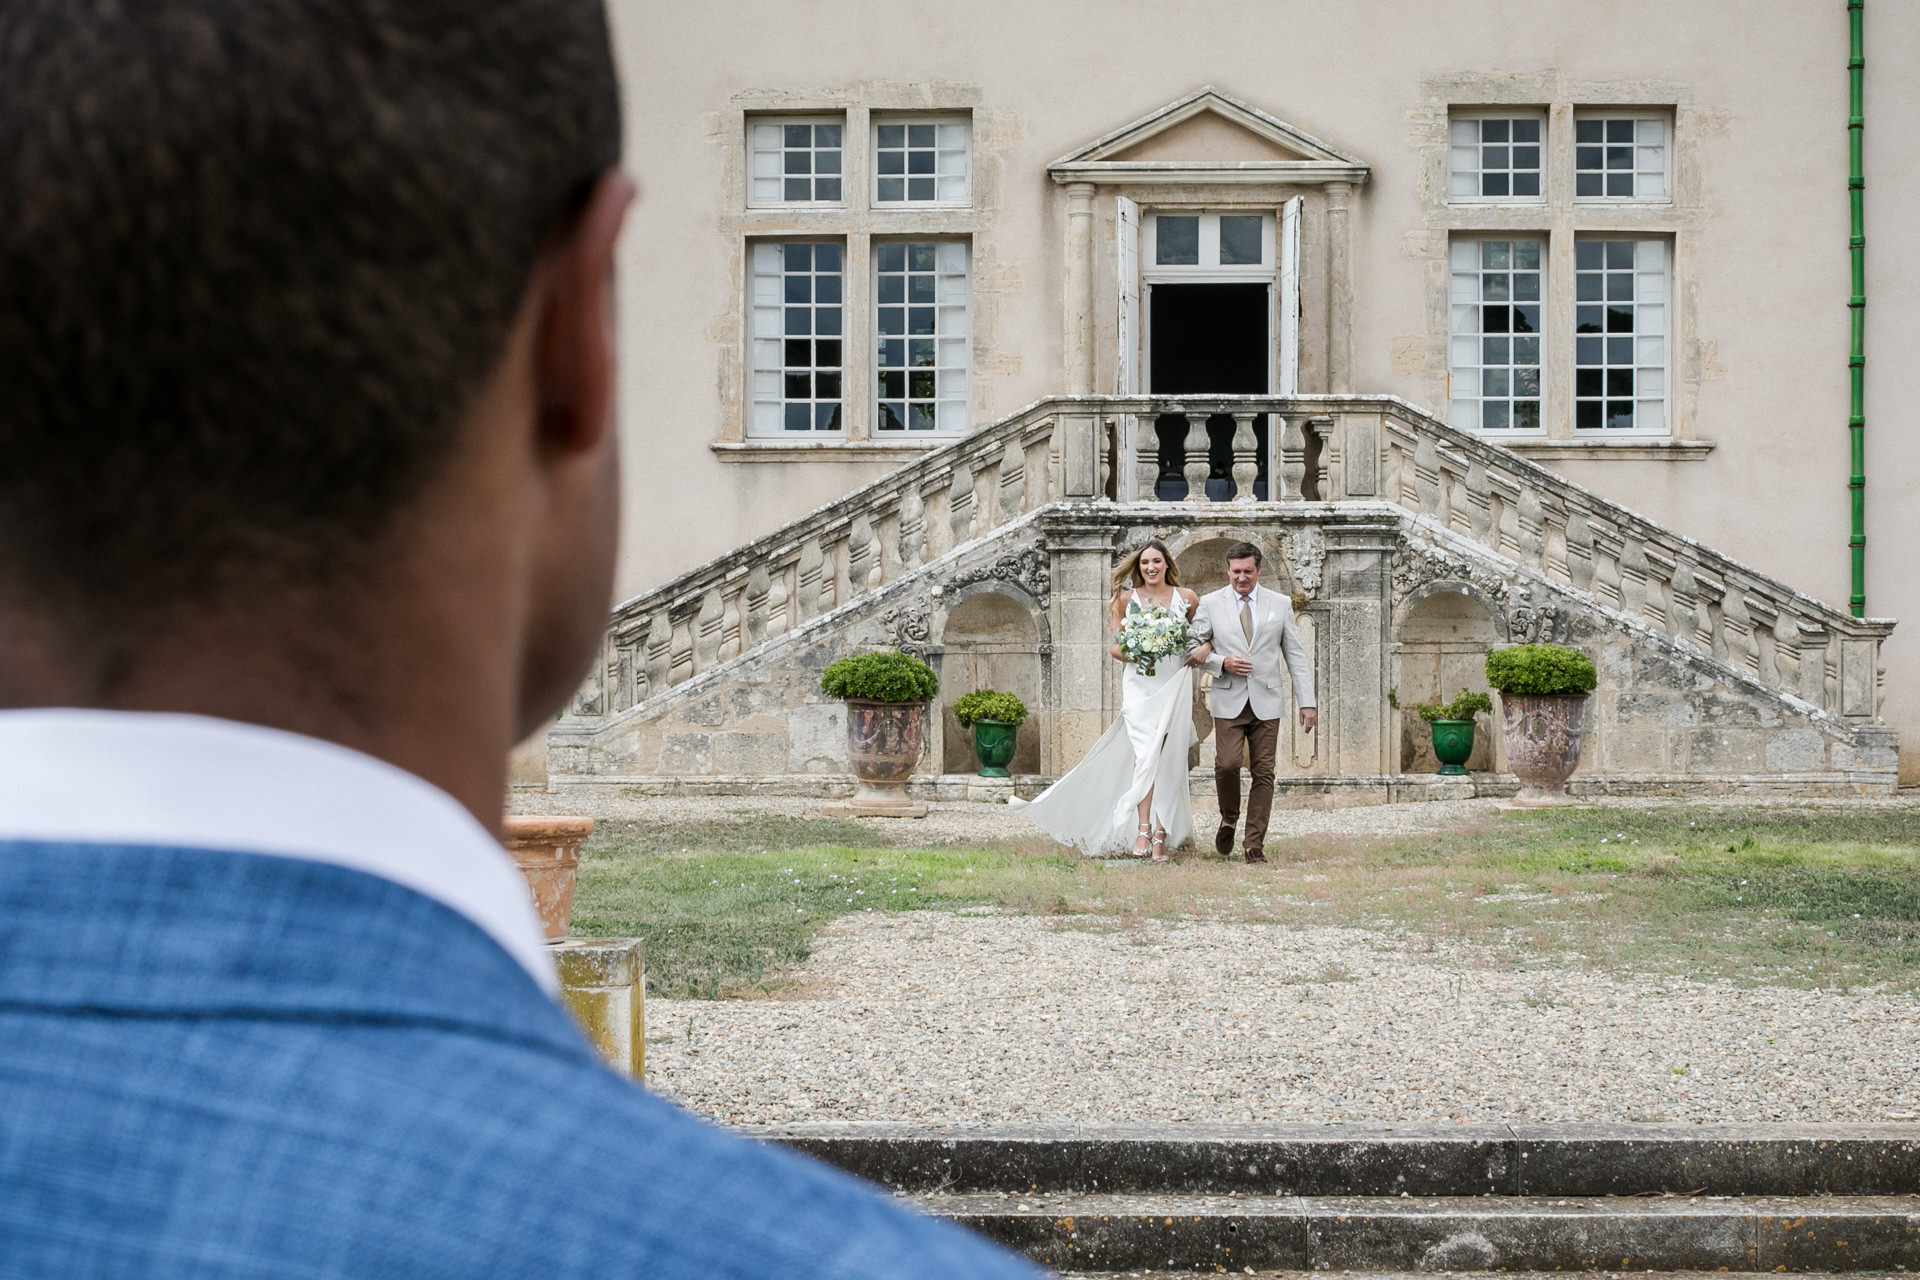 Pézenas, France Elopement Photography | The groom watches as his bride